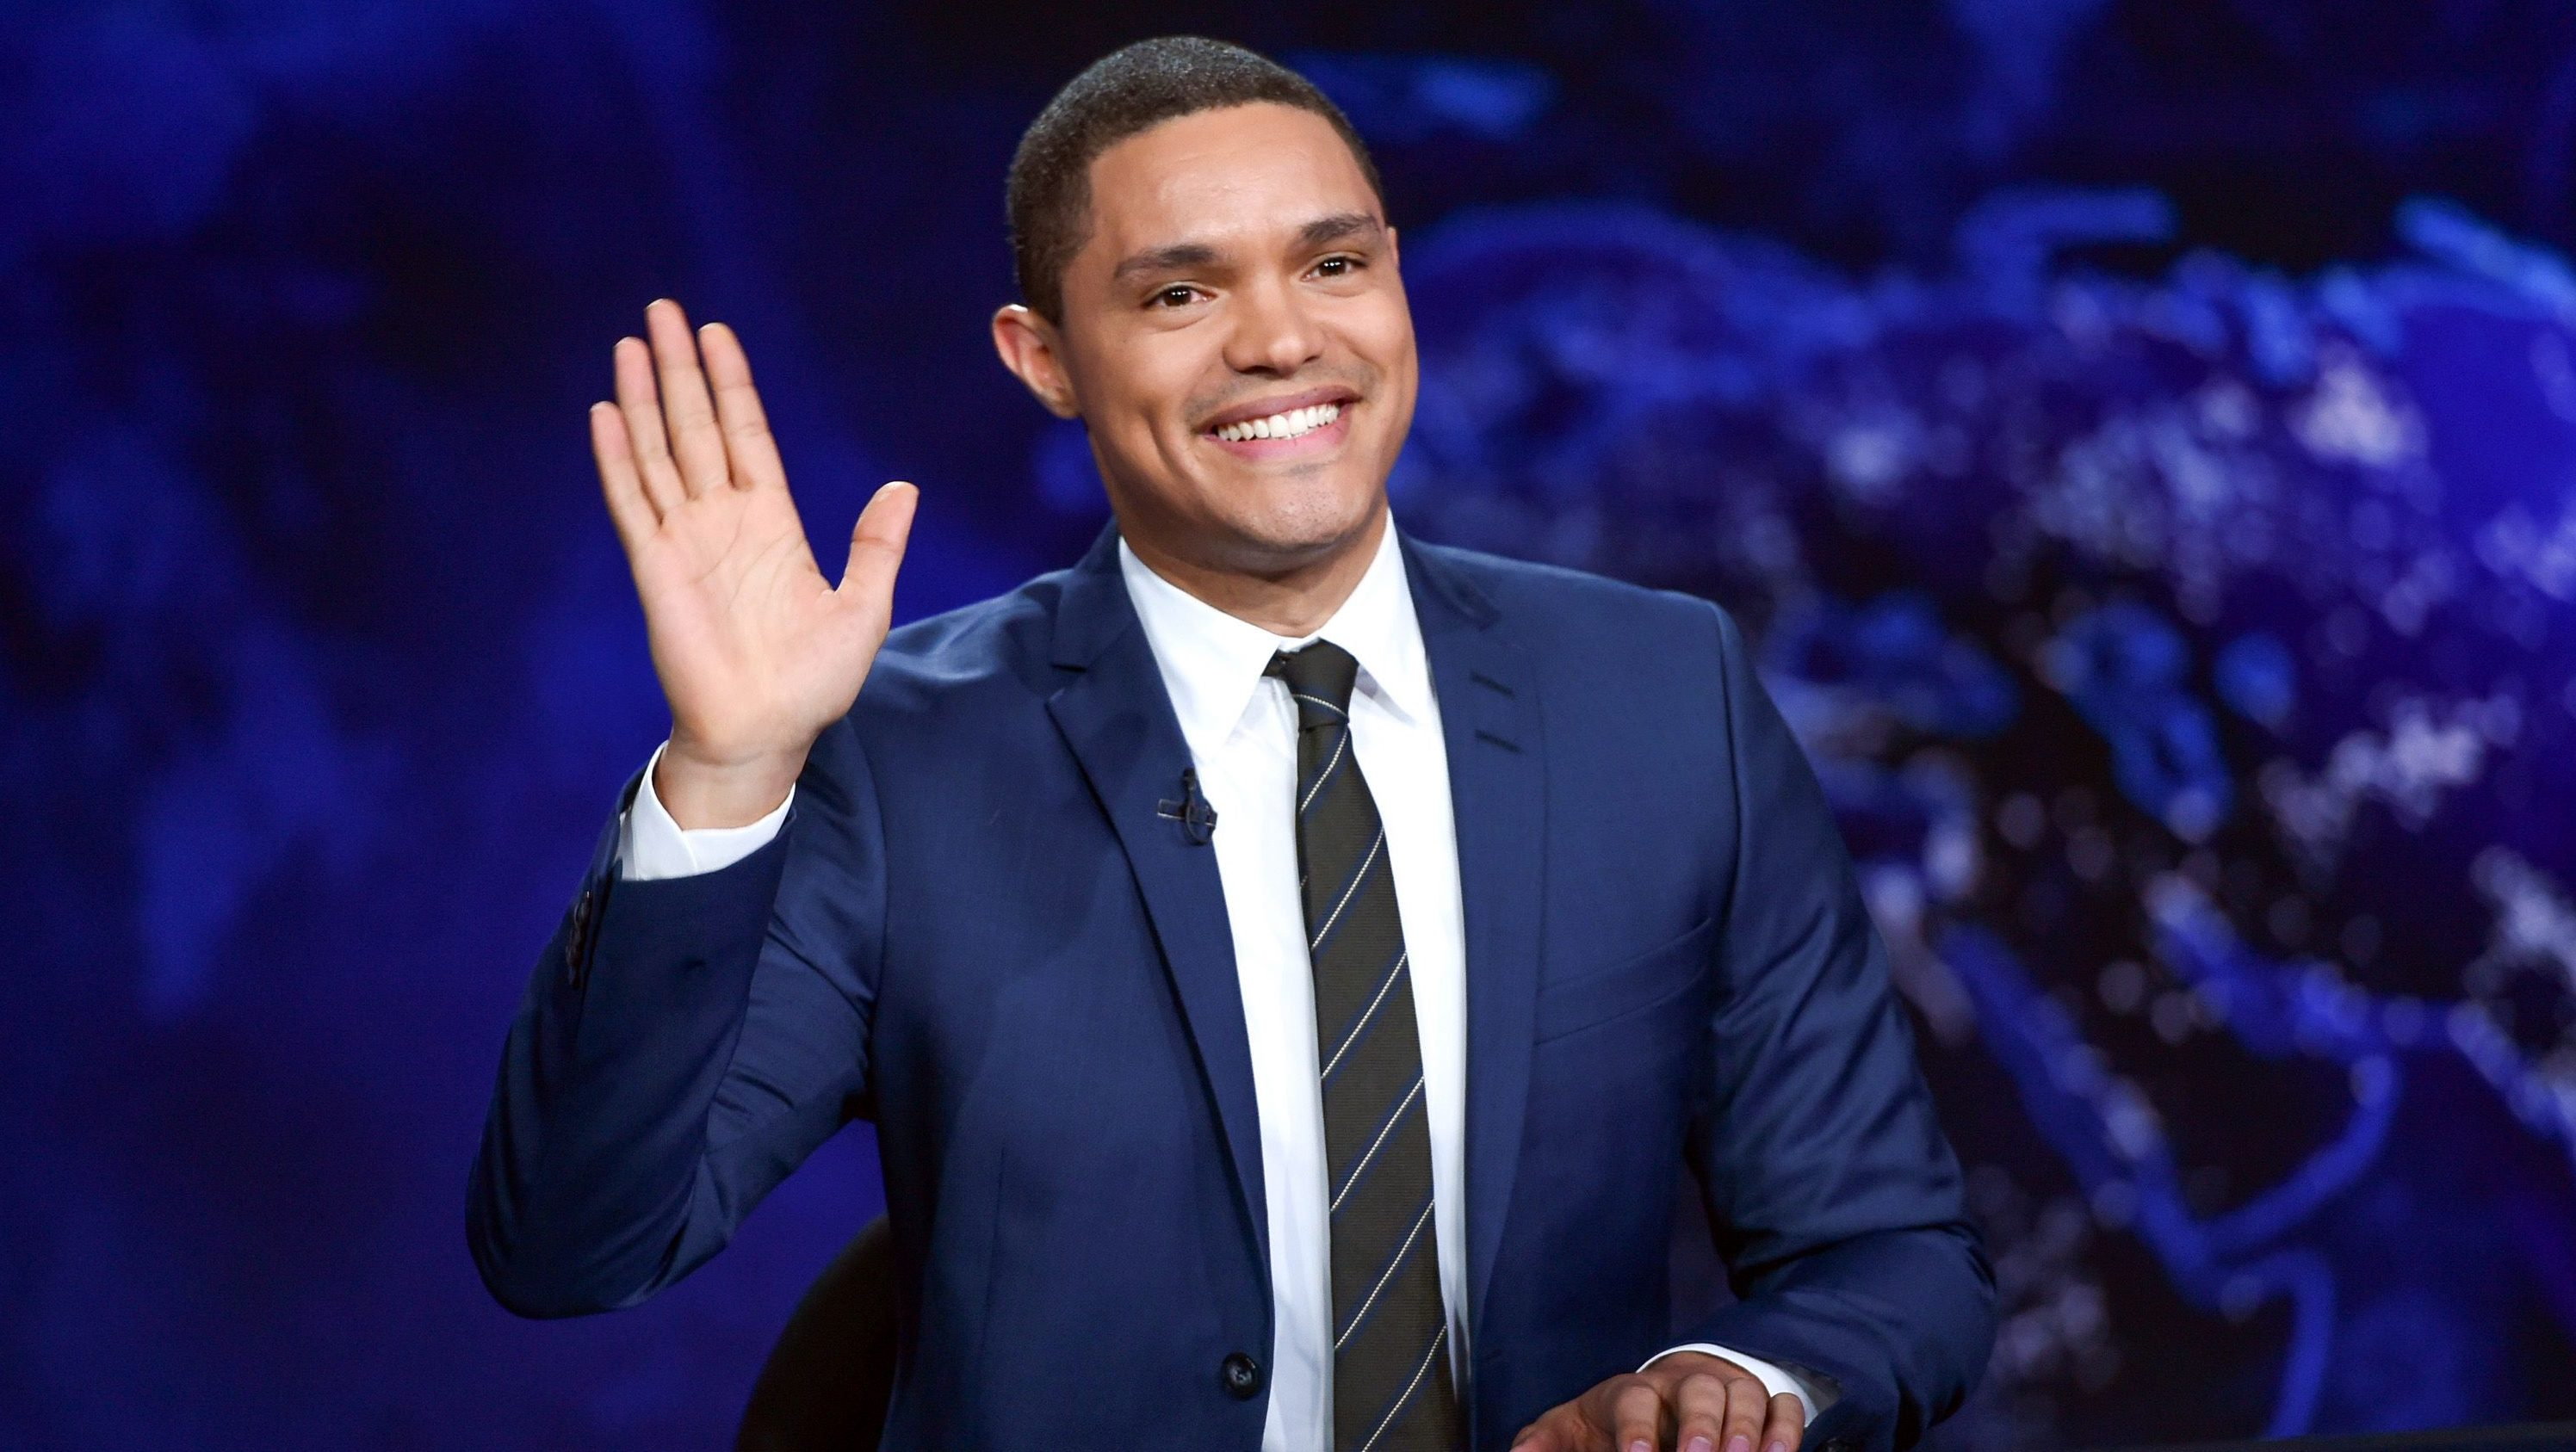 qz.com - Annabelle Timsit - Trevor Noah's World Cup joke shows how the world misunderstands the French